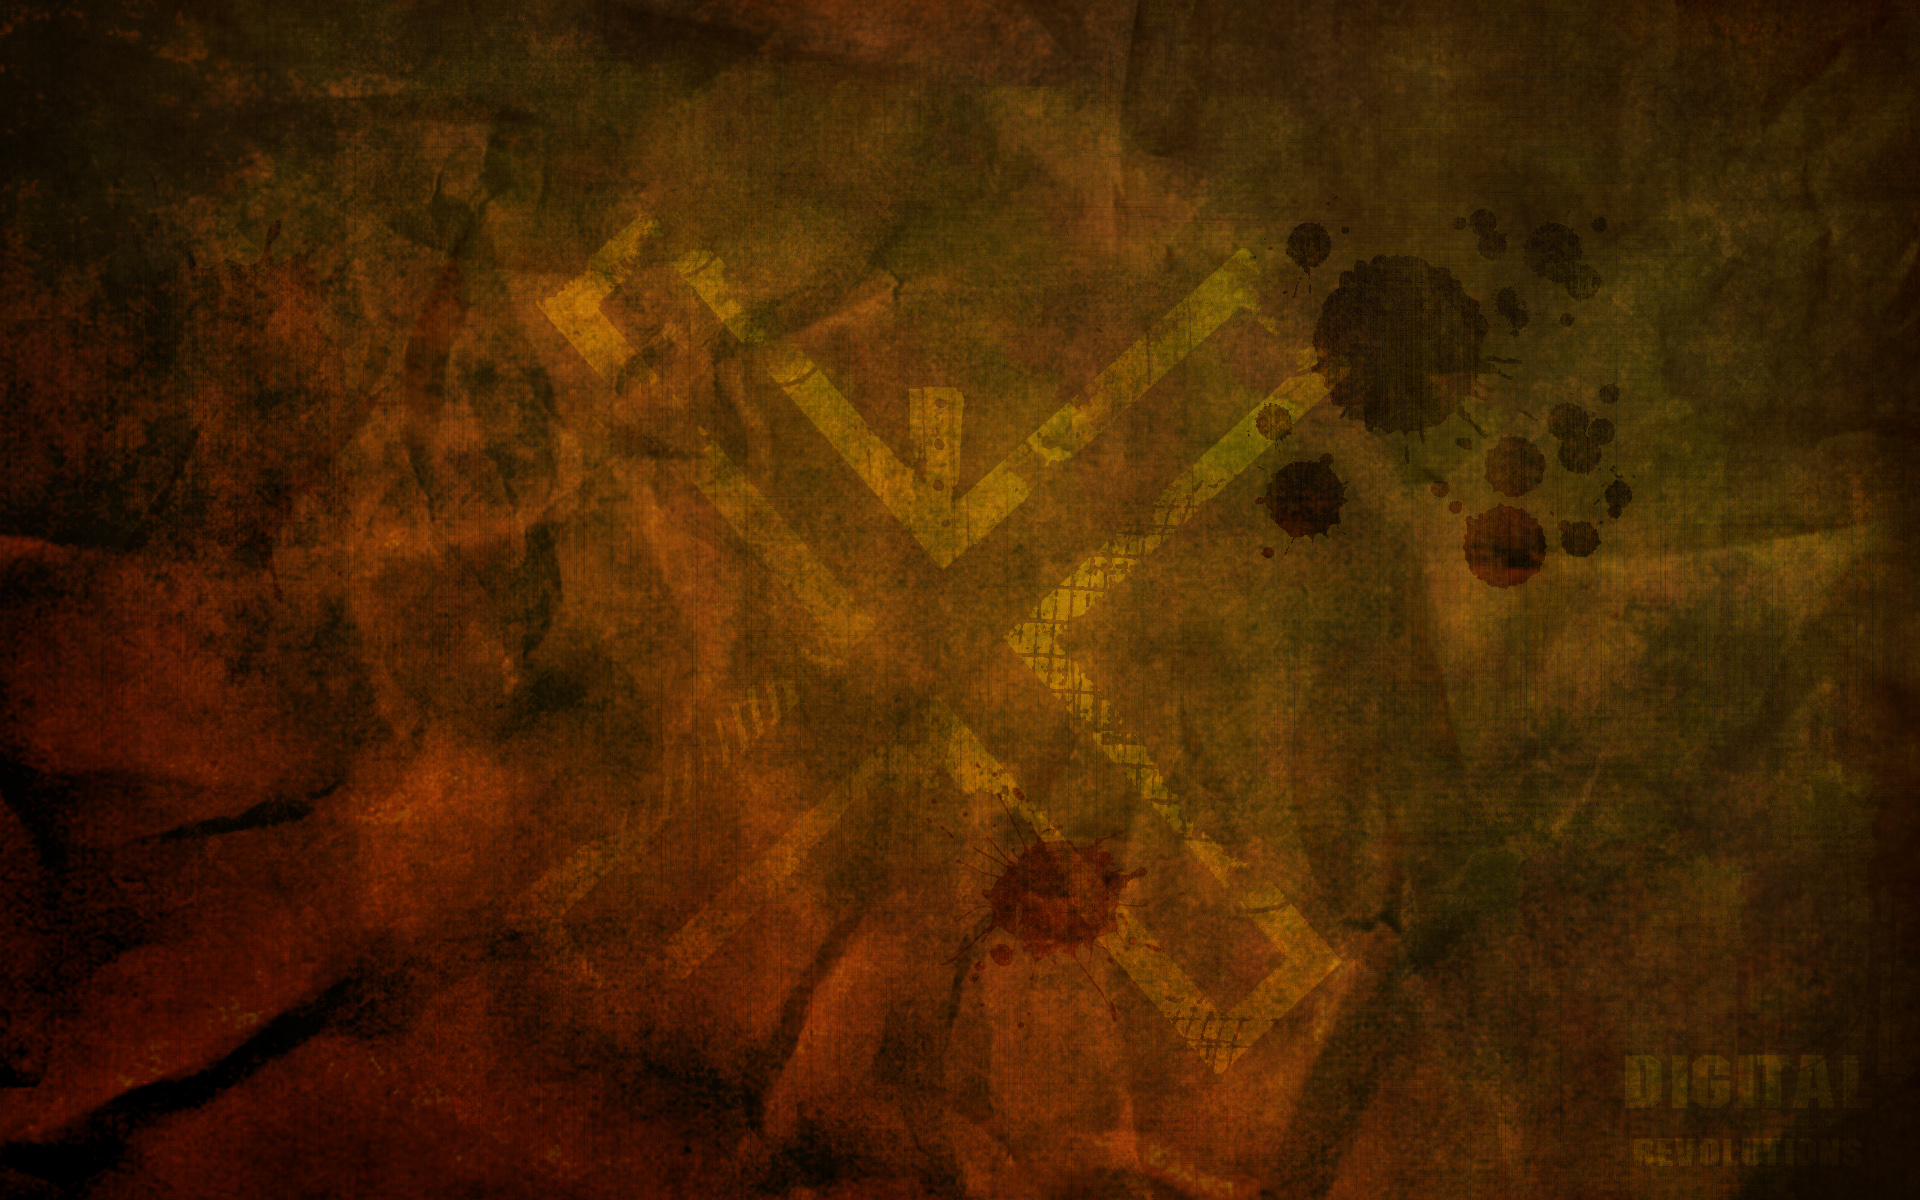 X Prev X Abstract Grunge Wallpaper Widescreen Wallpaper Urban Revolutions Hi Res Grunge Free Digital Abstract